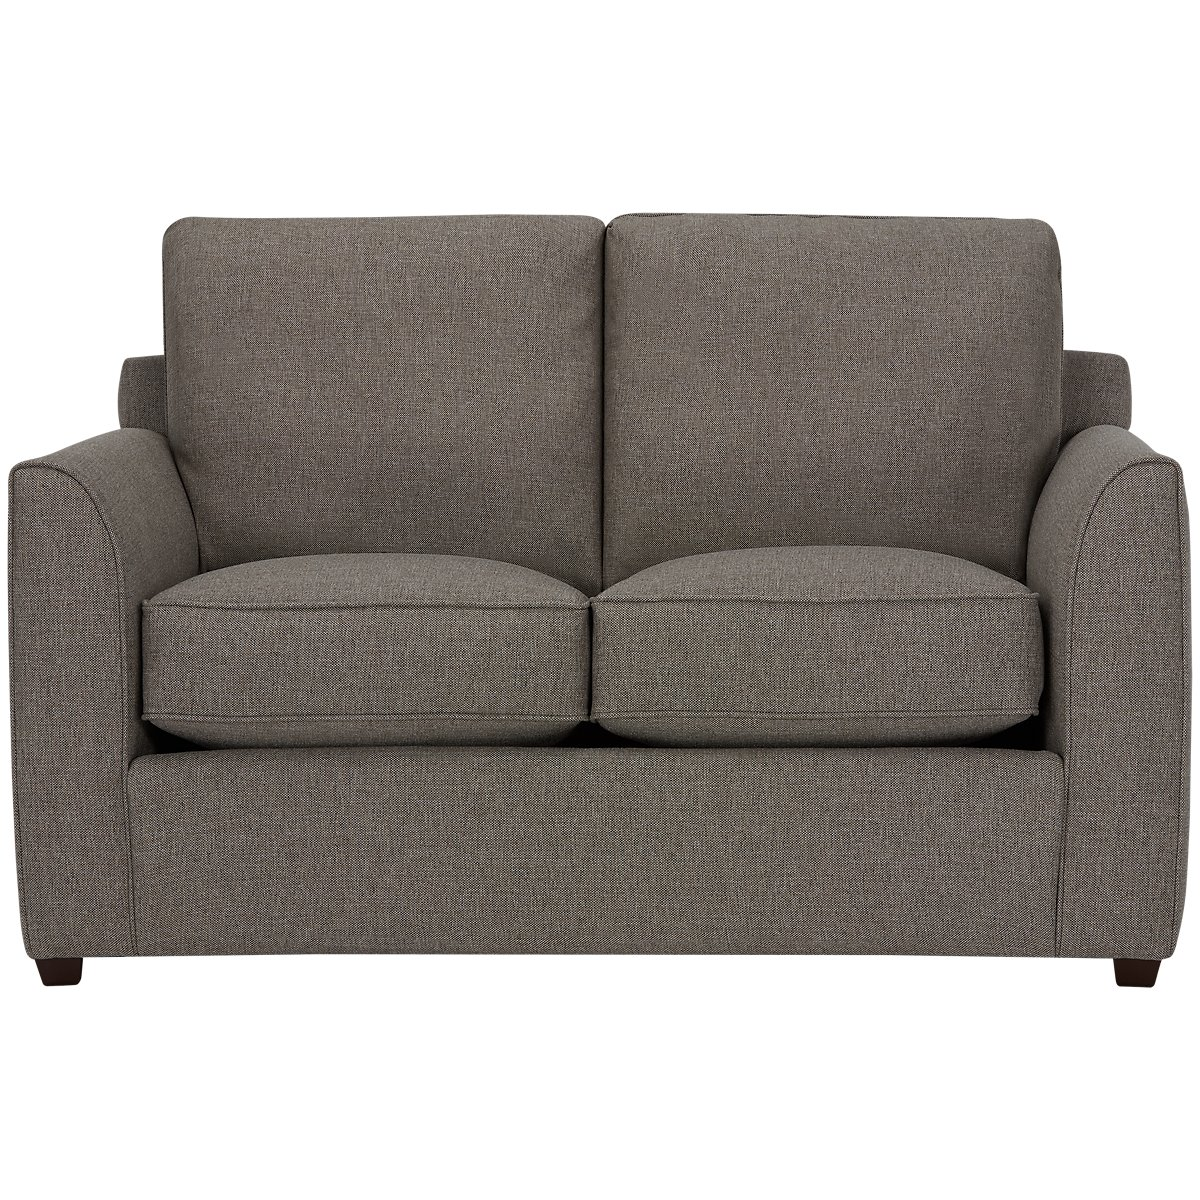 Asheville Brown Fabric Loveseat